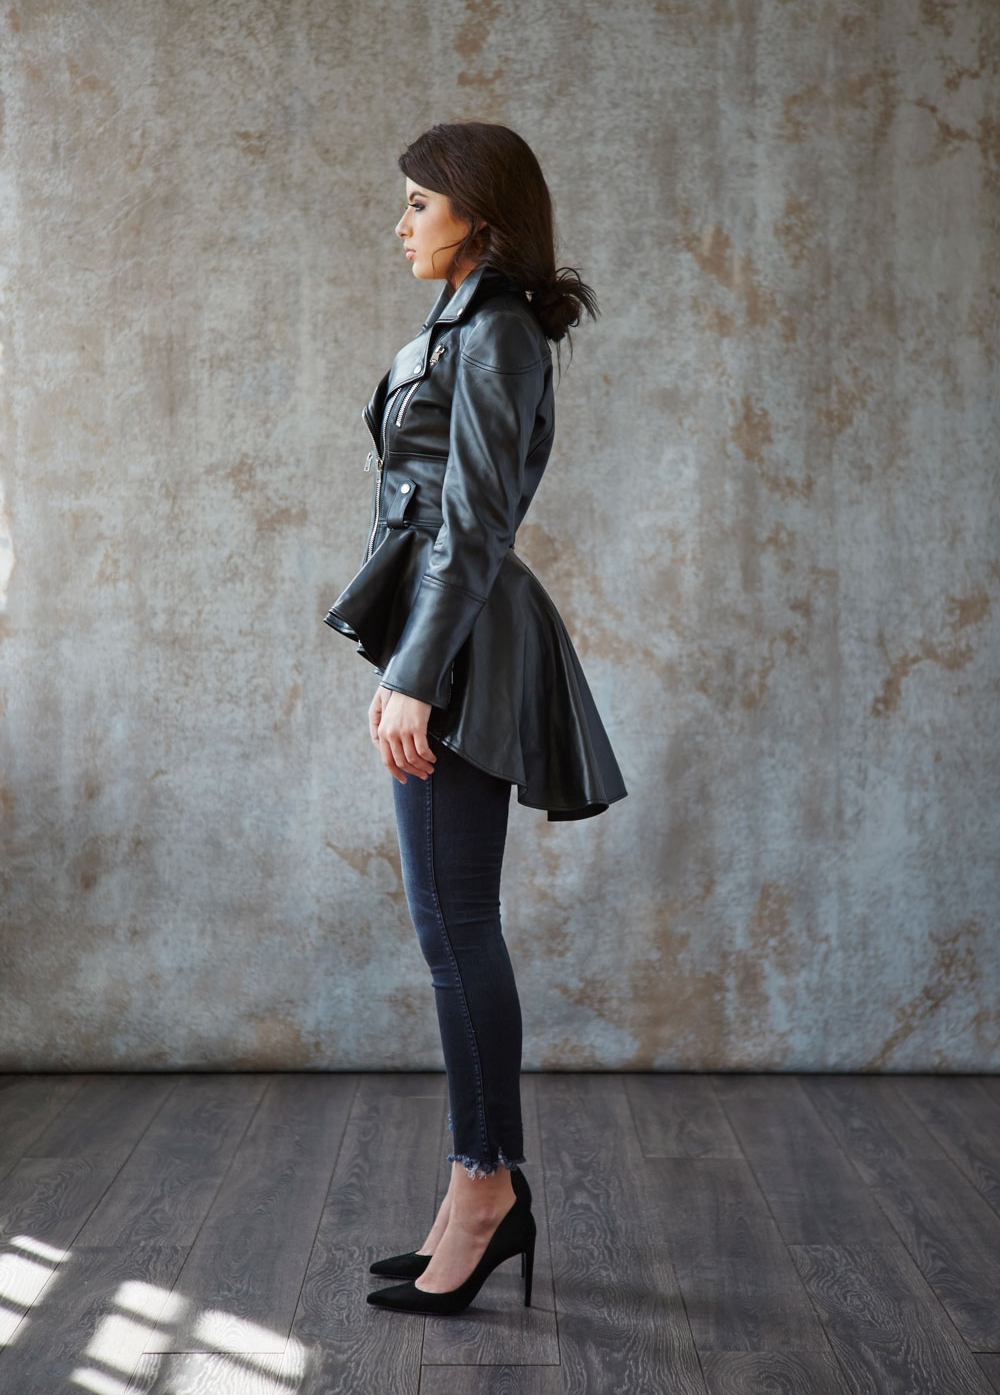 Alexander McQueen peplum leather jacket, Mother Denim jeans, Jimmy Choo pumps